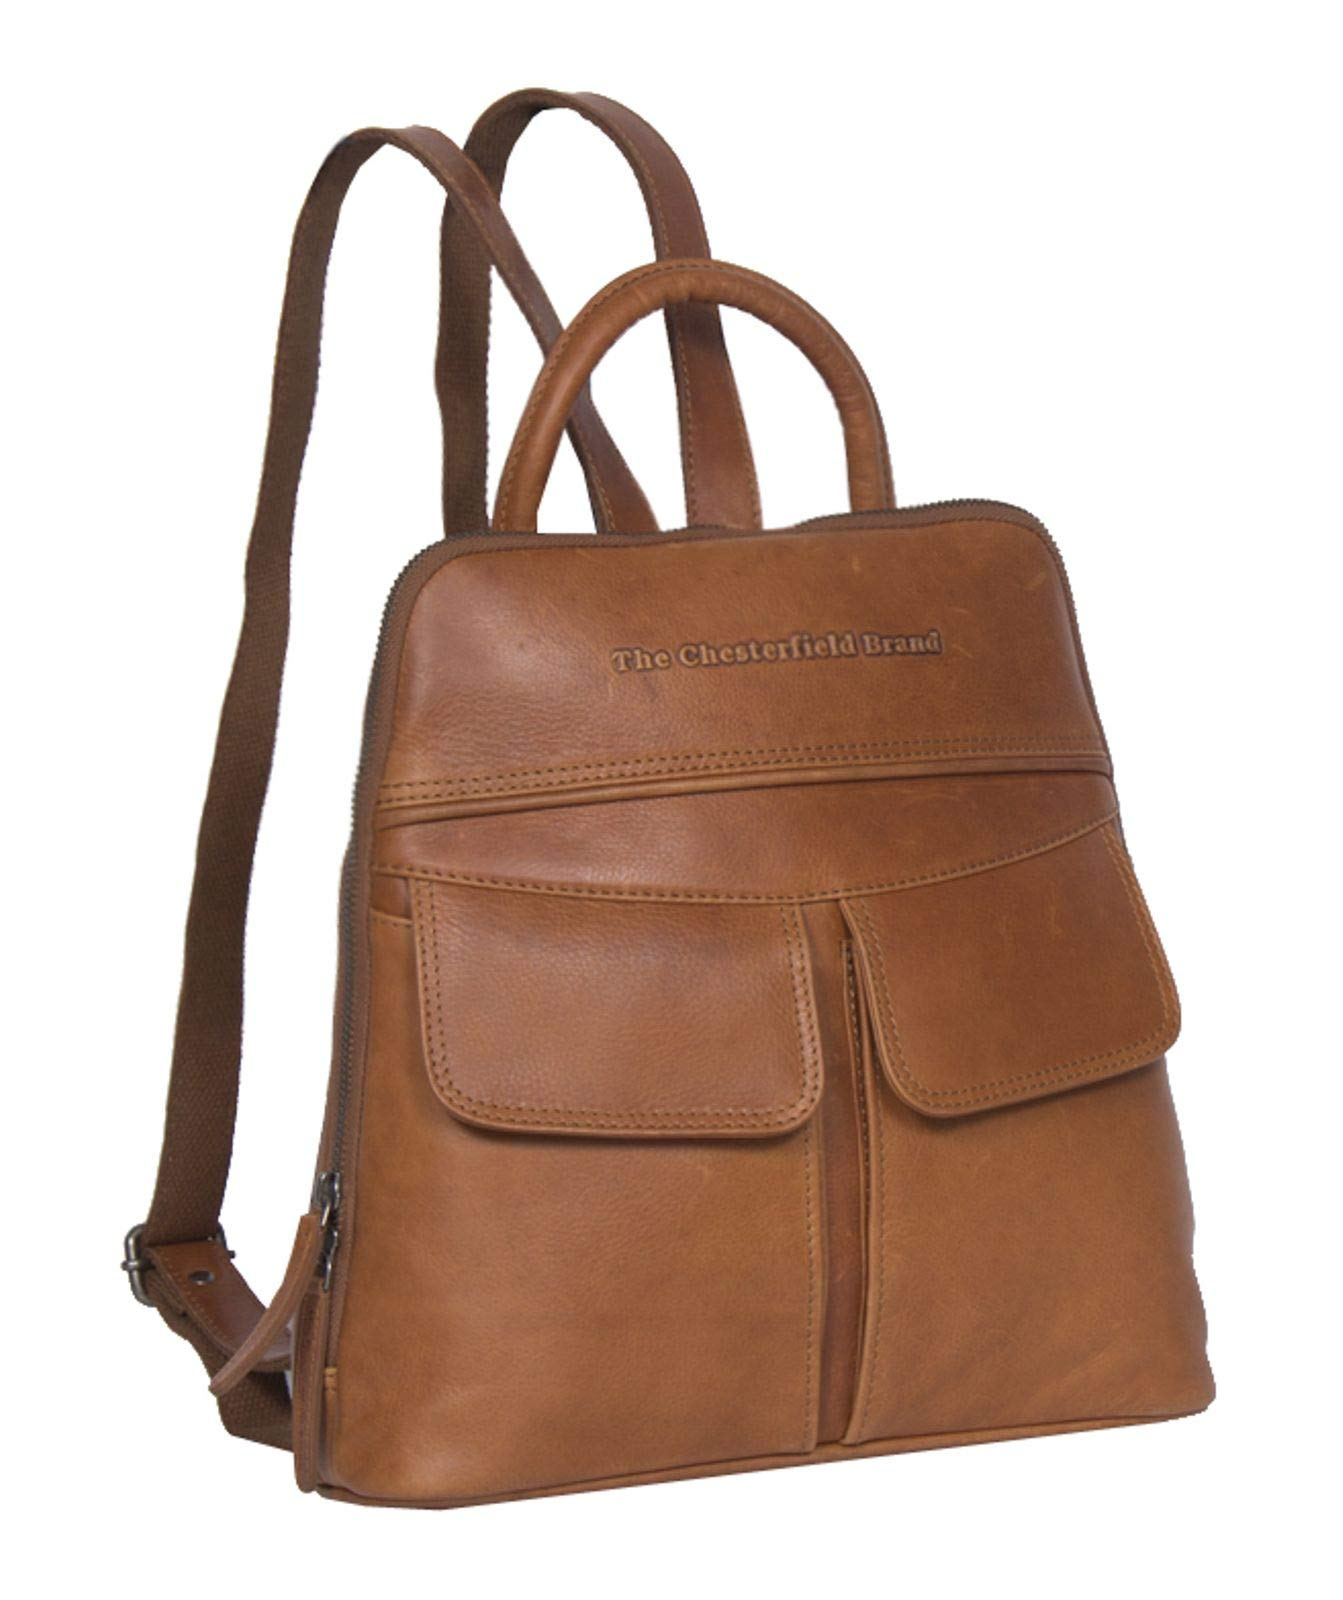 The Chesterfield Brand Cityrucksack